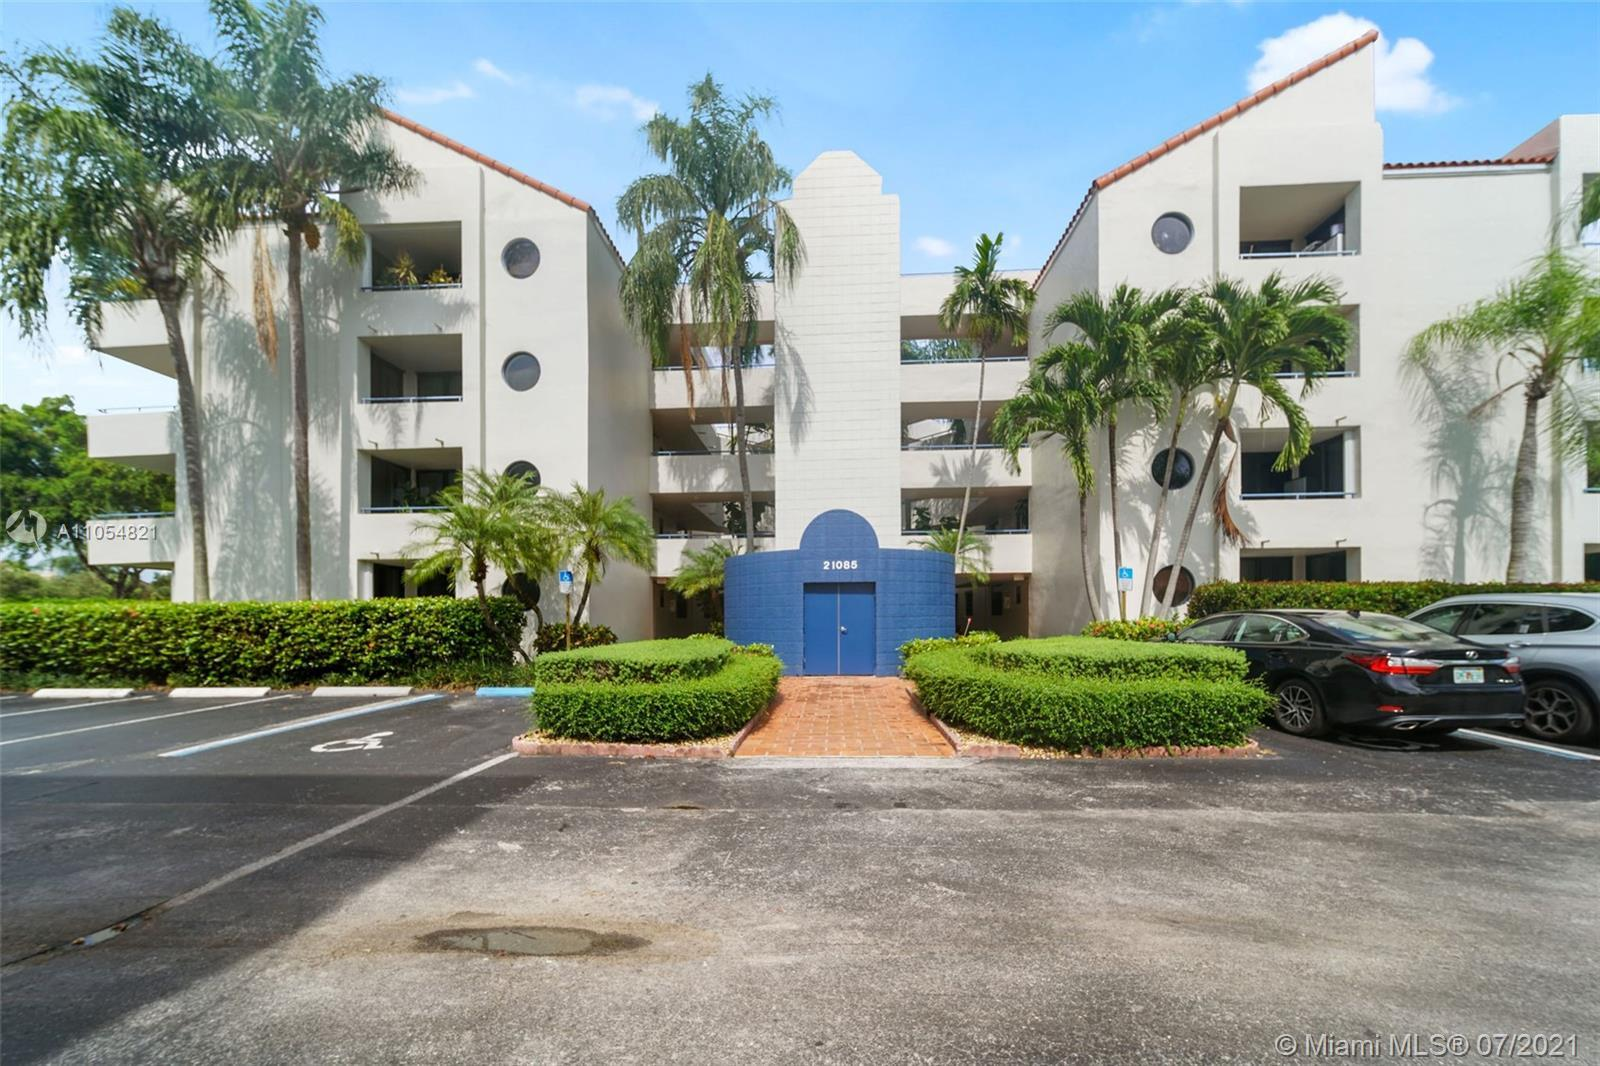 MUCH SOUGHT AFTER GARDEN CONDO IN SPINNAKER BAY AT THE WATERWAYS, AVENTURA...VERY WELL MAINTAINED WI